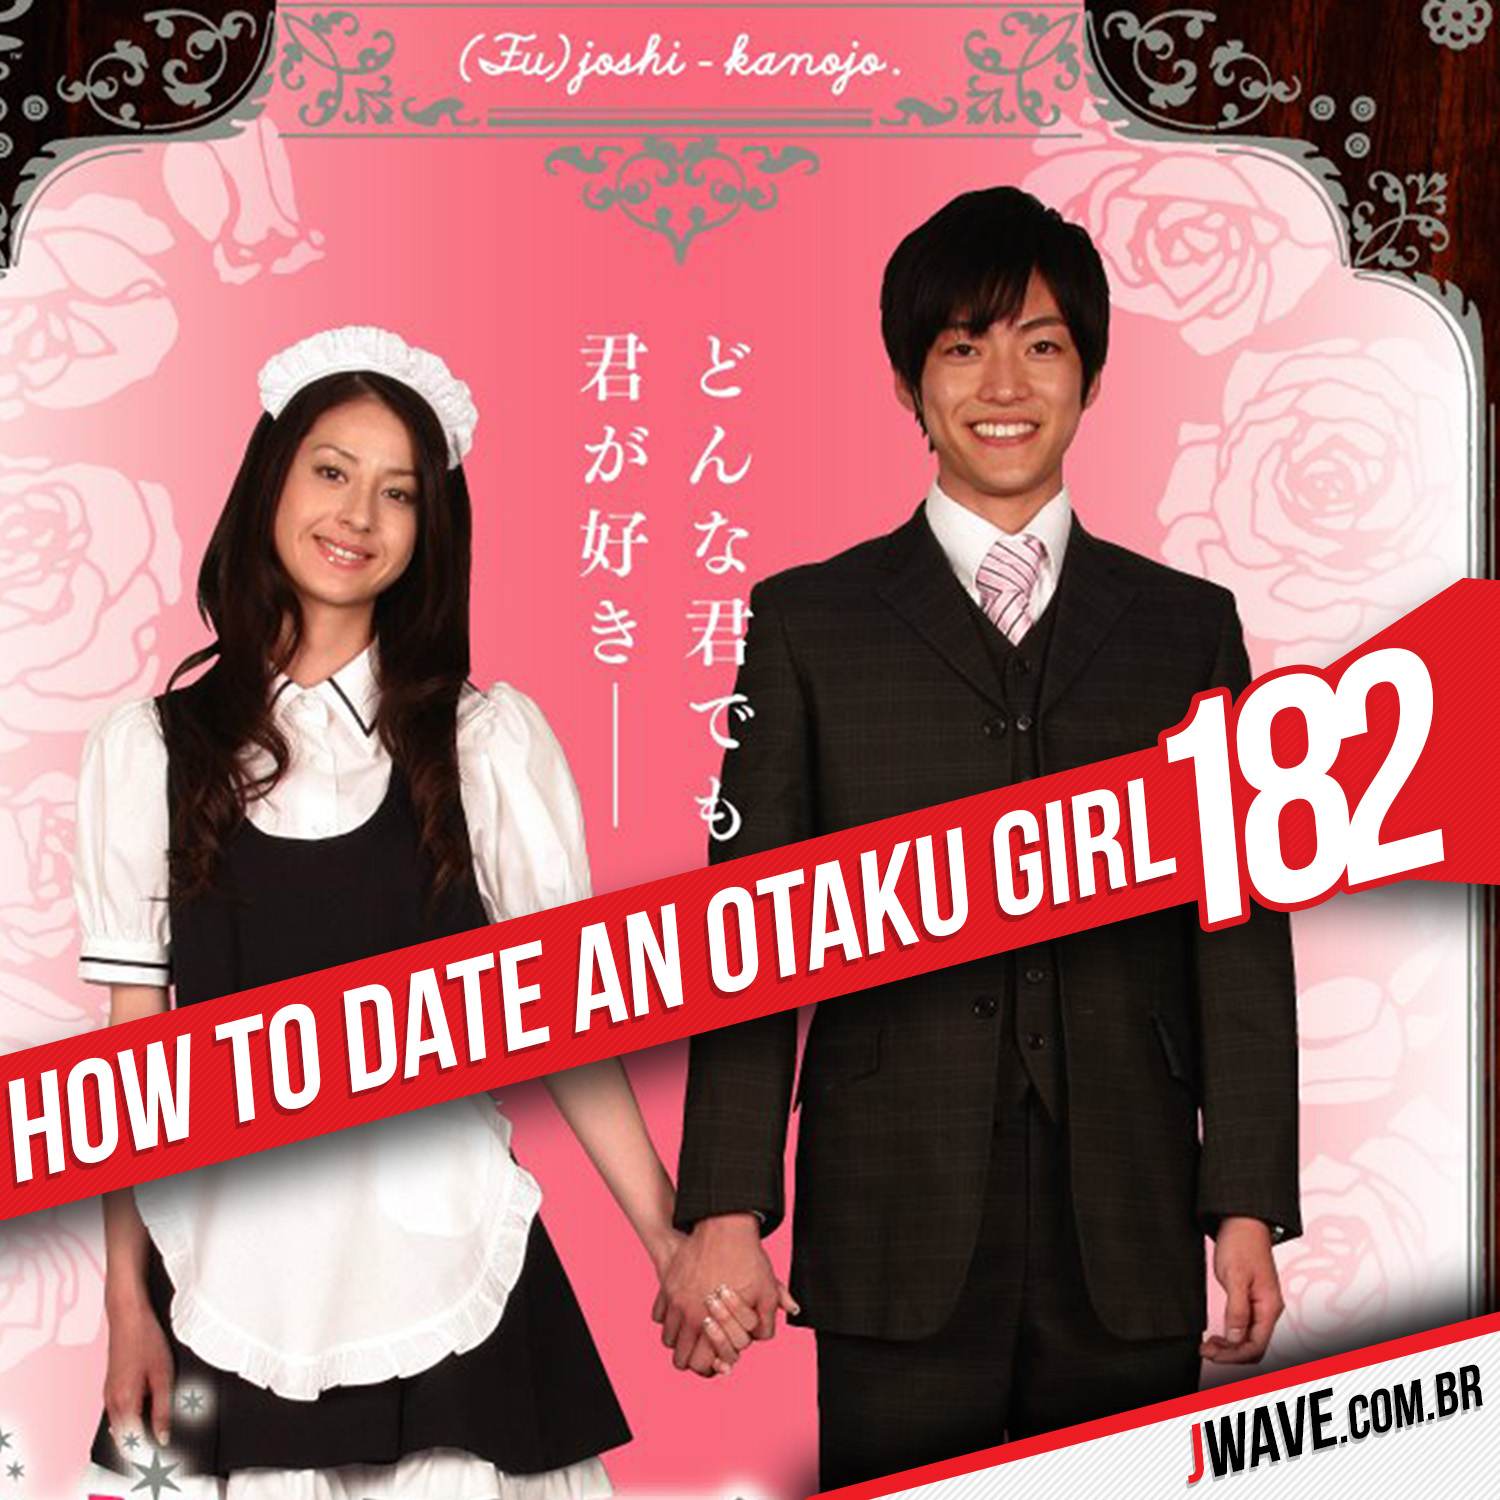 Dating an otaku girl